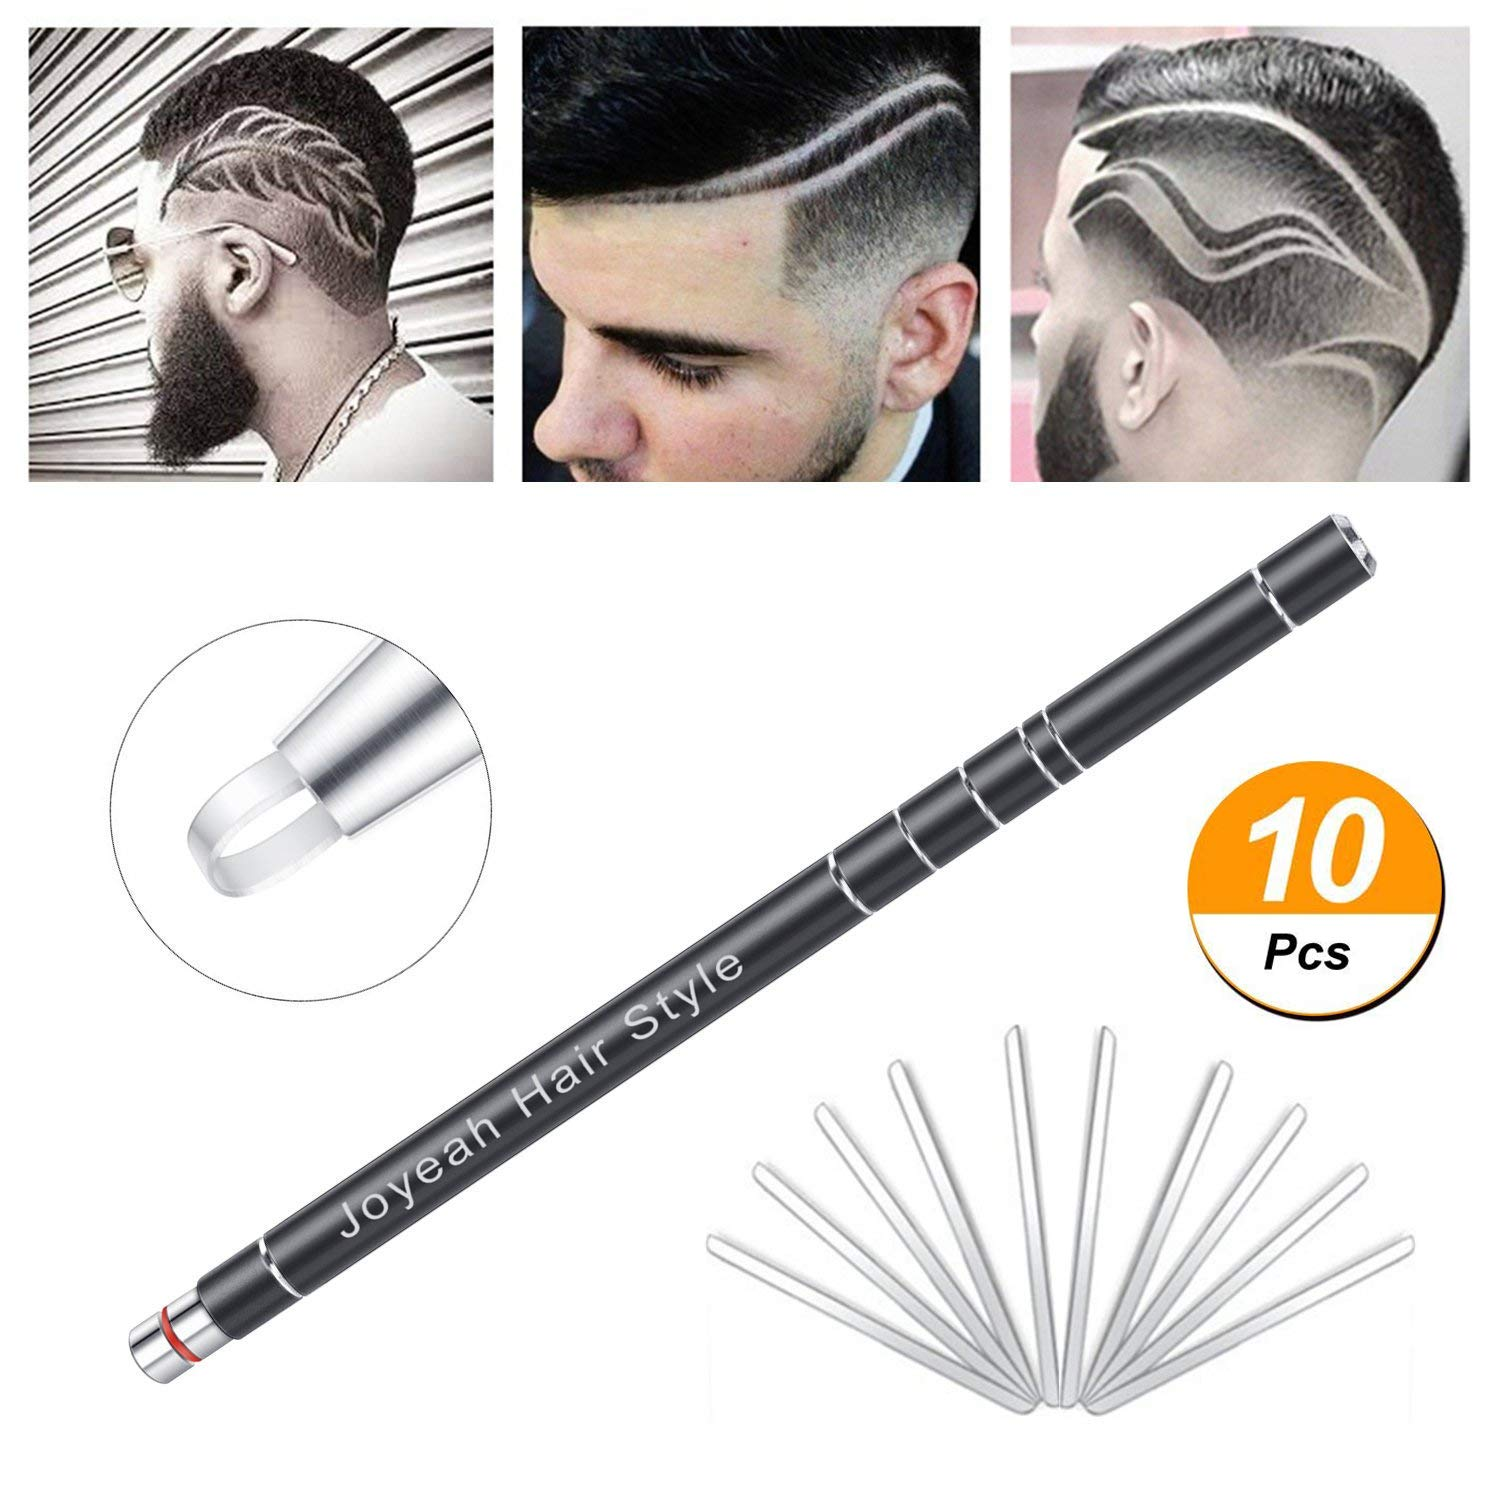 Hair Tattoo Trim Styling Face Eyebrow Shaping Device, Hair Engraving Pen + 10 Blades + Tweezers Hair Styling Eyebrows Beards Razor Tool (Black) Coobal